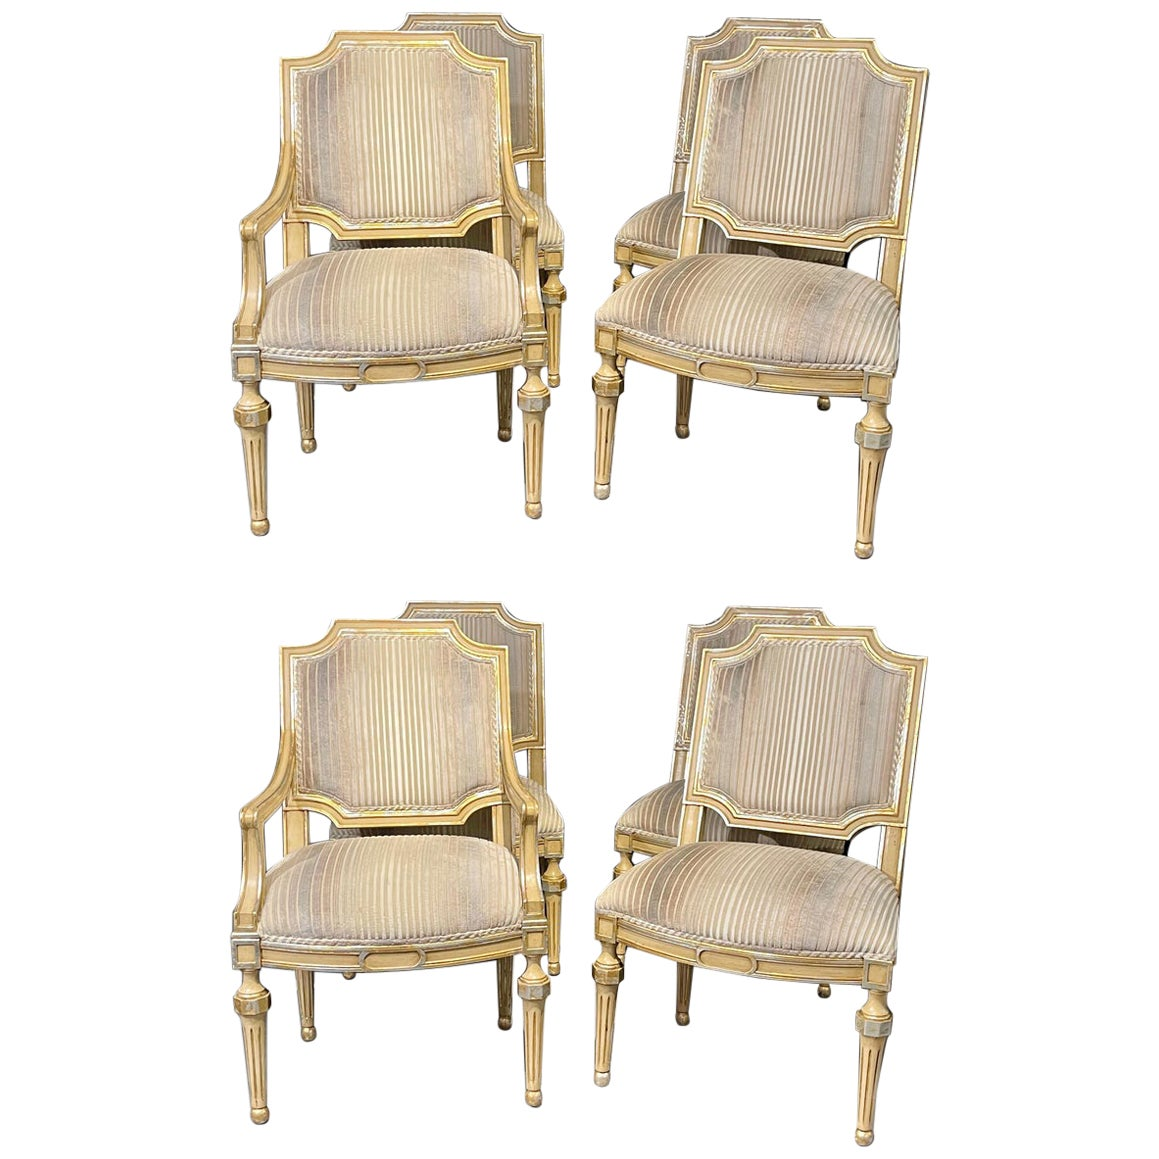 Set of Eight Louis XVI Style Dining Chairs Painted and Parcel-Gilt, Jansen Style